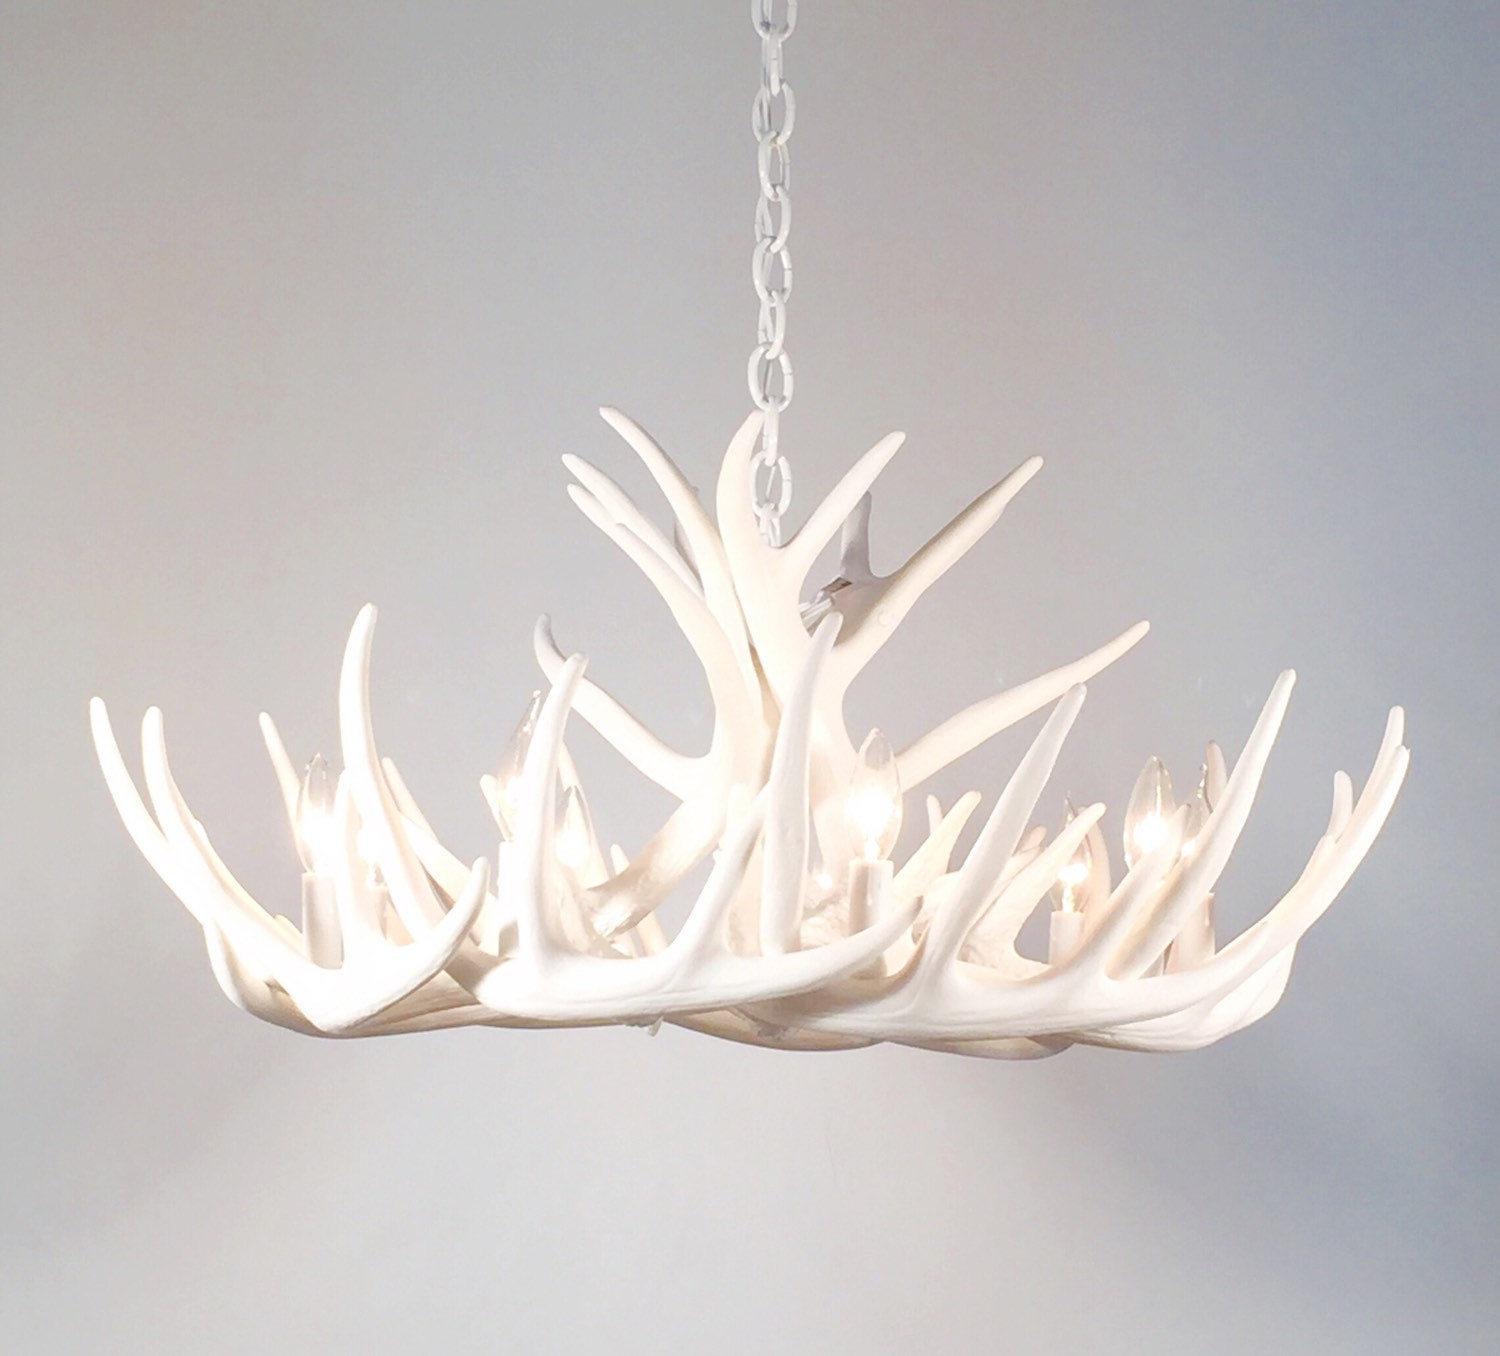 White Antler Chandelier Faux Antler Chandelier W12c Throughout Antler Chandelier (View 14 of 15)